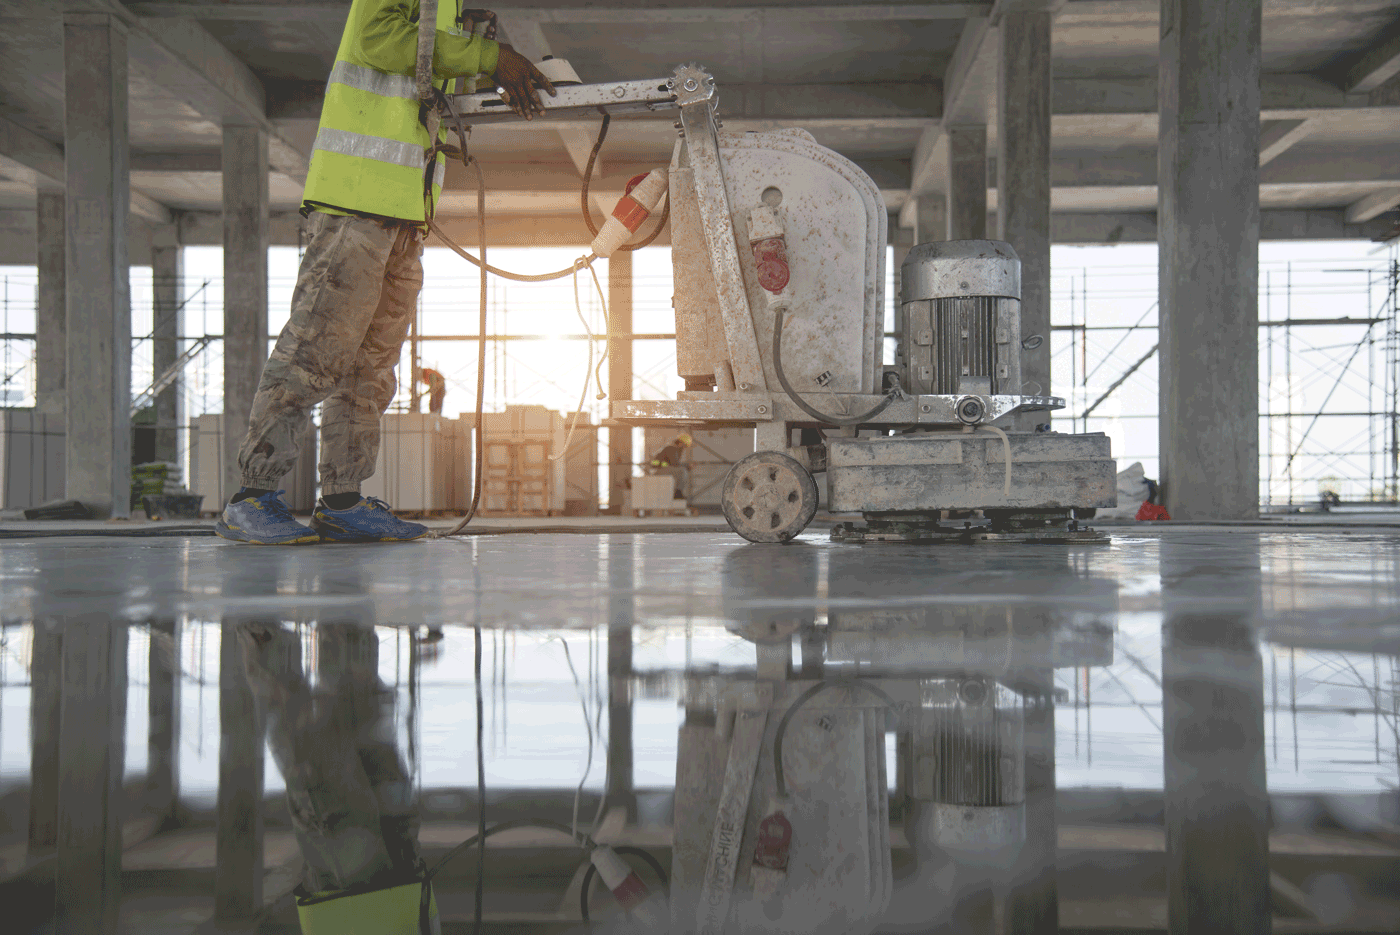 Is it worth investing in polished concrete floors?